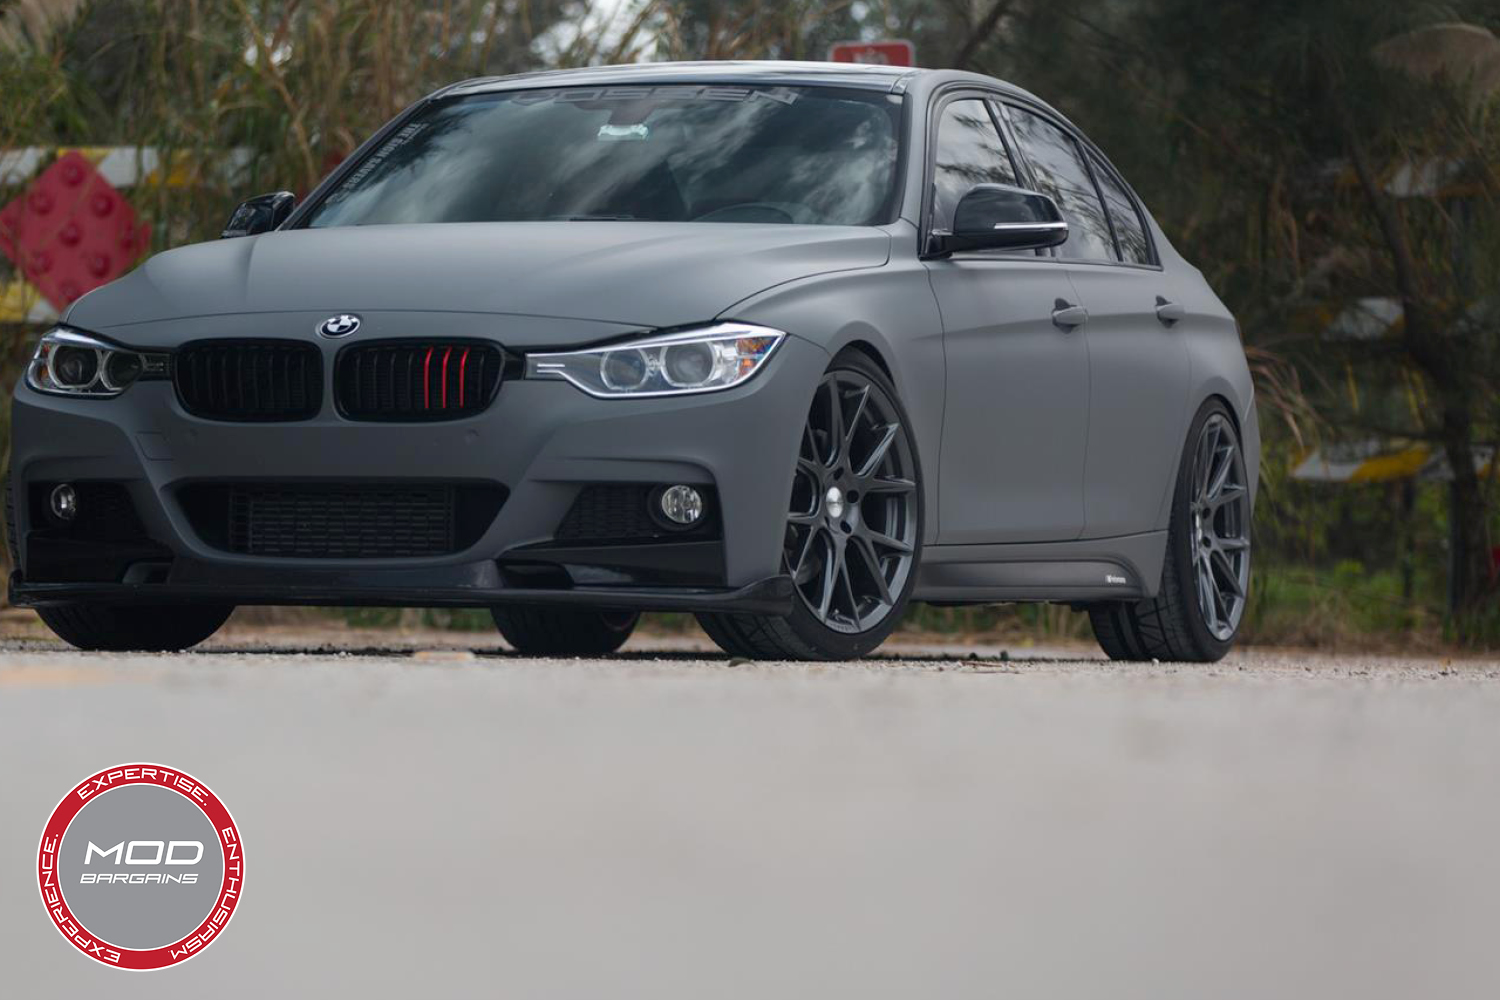 Vossen 20-inch Gloss Graphite VFS6 Wheel Installed BMW F80 M3 3/4 Front View